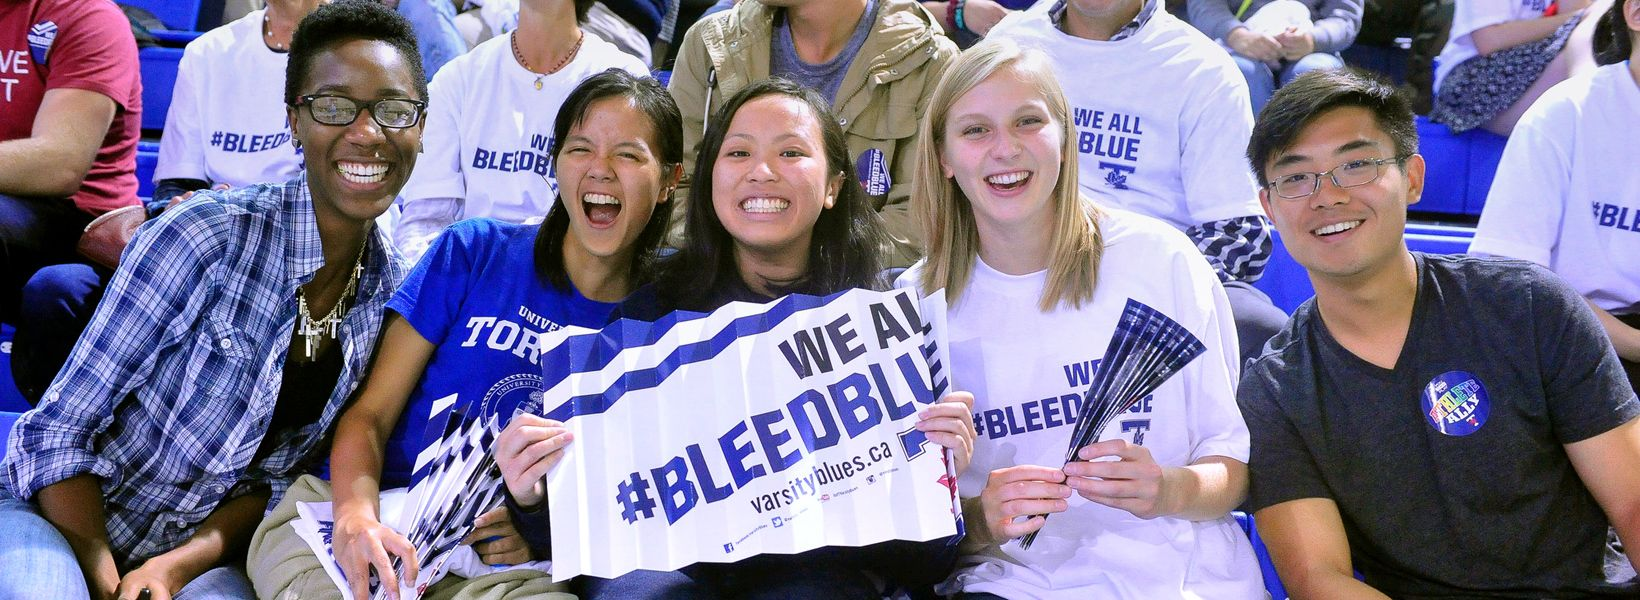 varsity blues fans at a sporting event